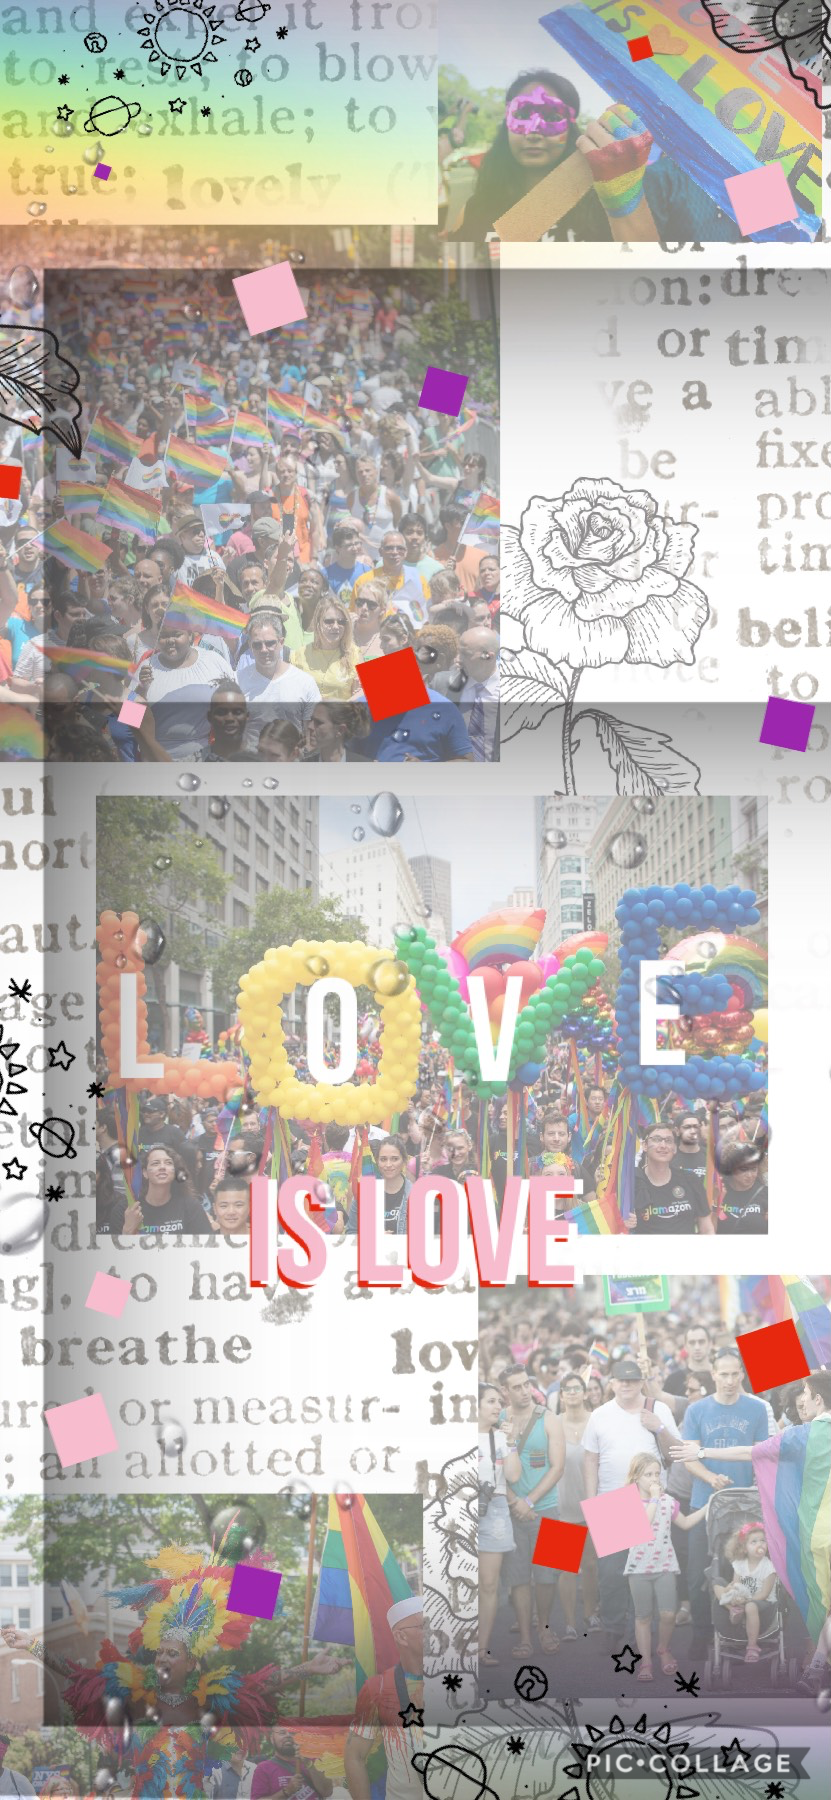 ik it's stupid cuz I hadn't  been on  for like the past 3 months, but frick that,  lets post some prideee...Made it a while ago for it to be my home screen during pride month, soo it's a lot like my old style...Ima try to show some of my newer collages; t